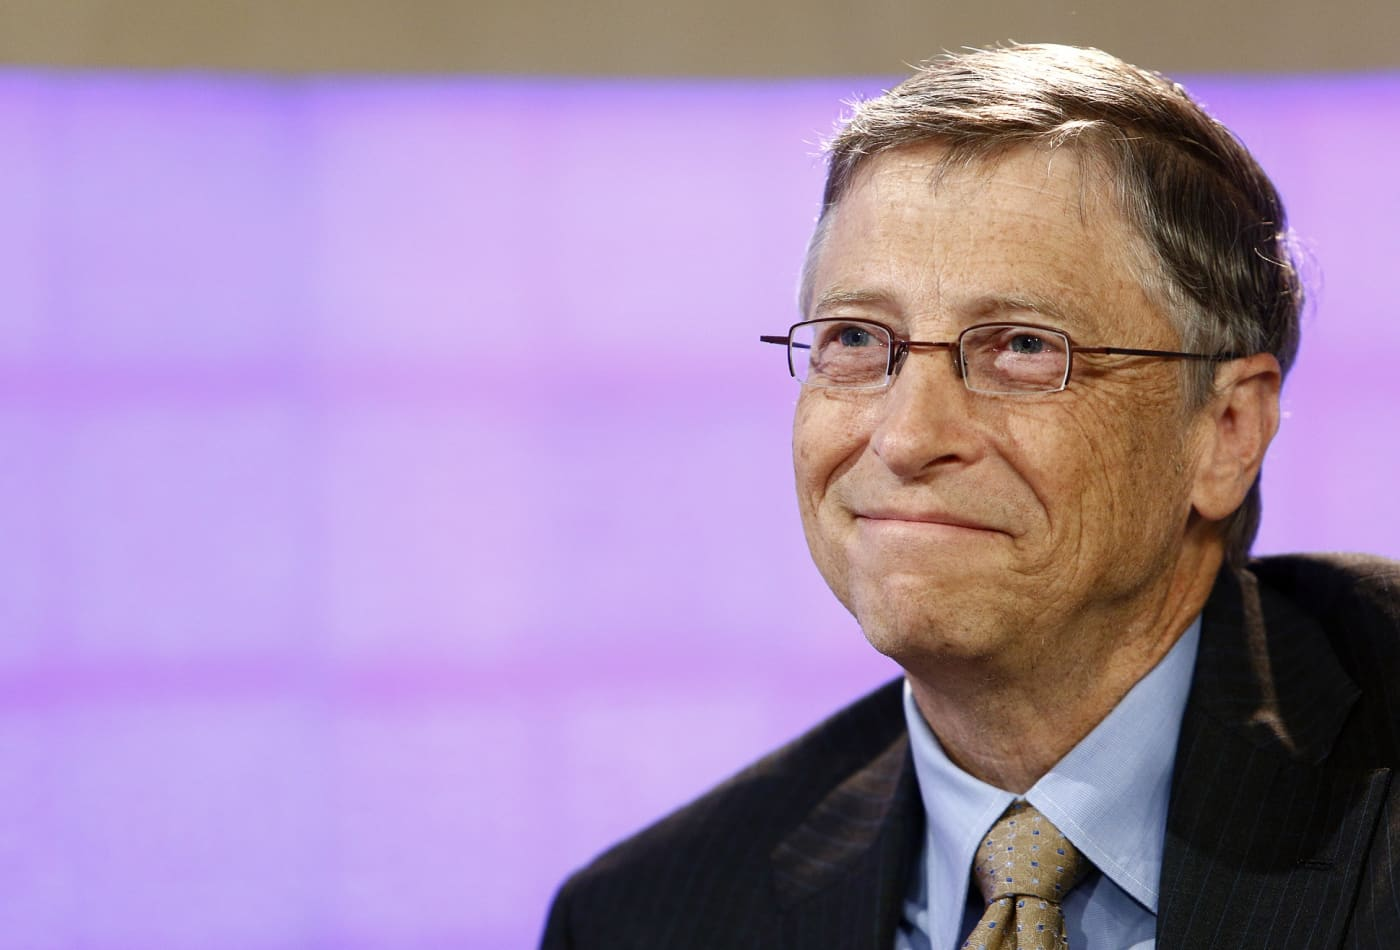 The business book Bill Gates is recommending to friends and colleagues right now